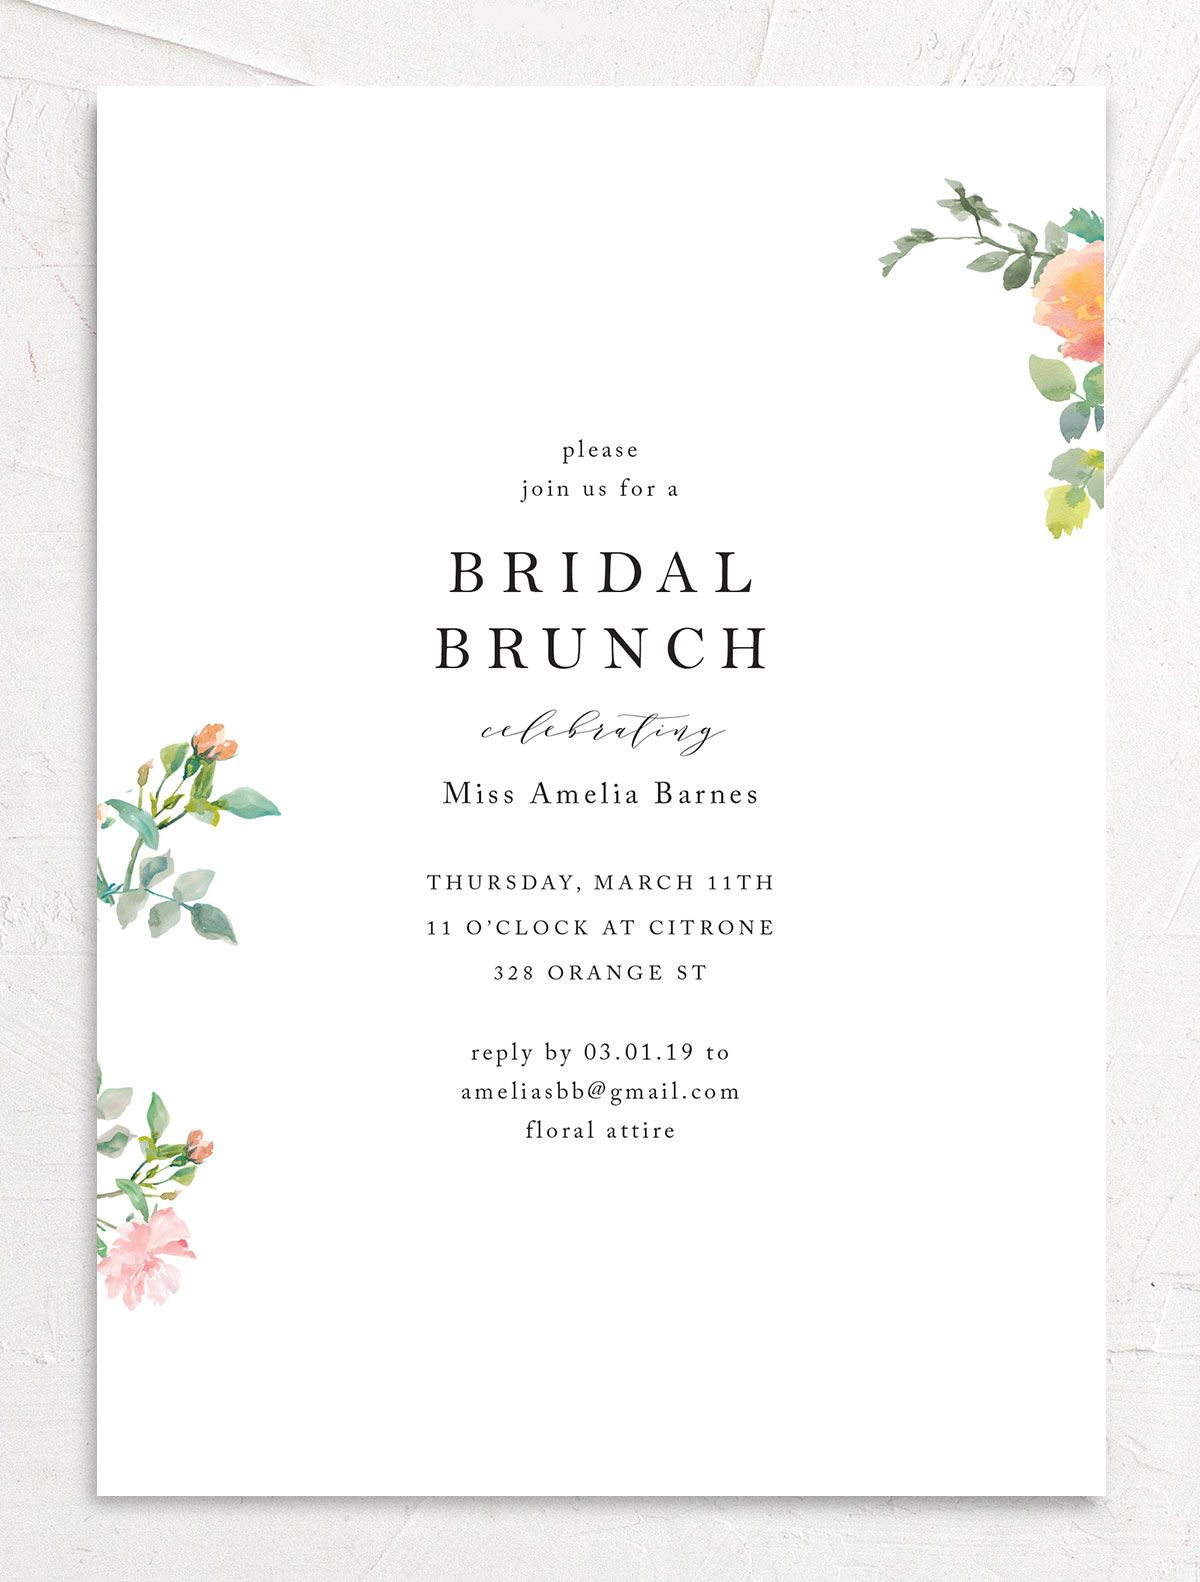 Minimal Floral Bridal Brunch invite front